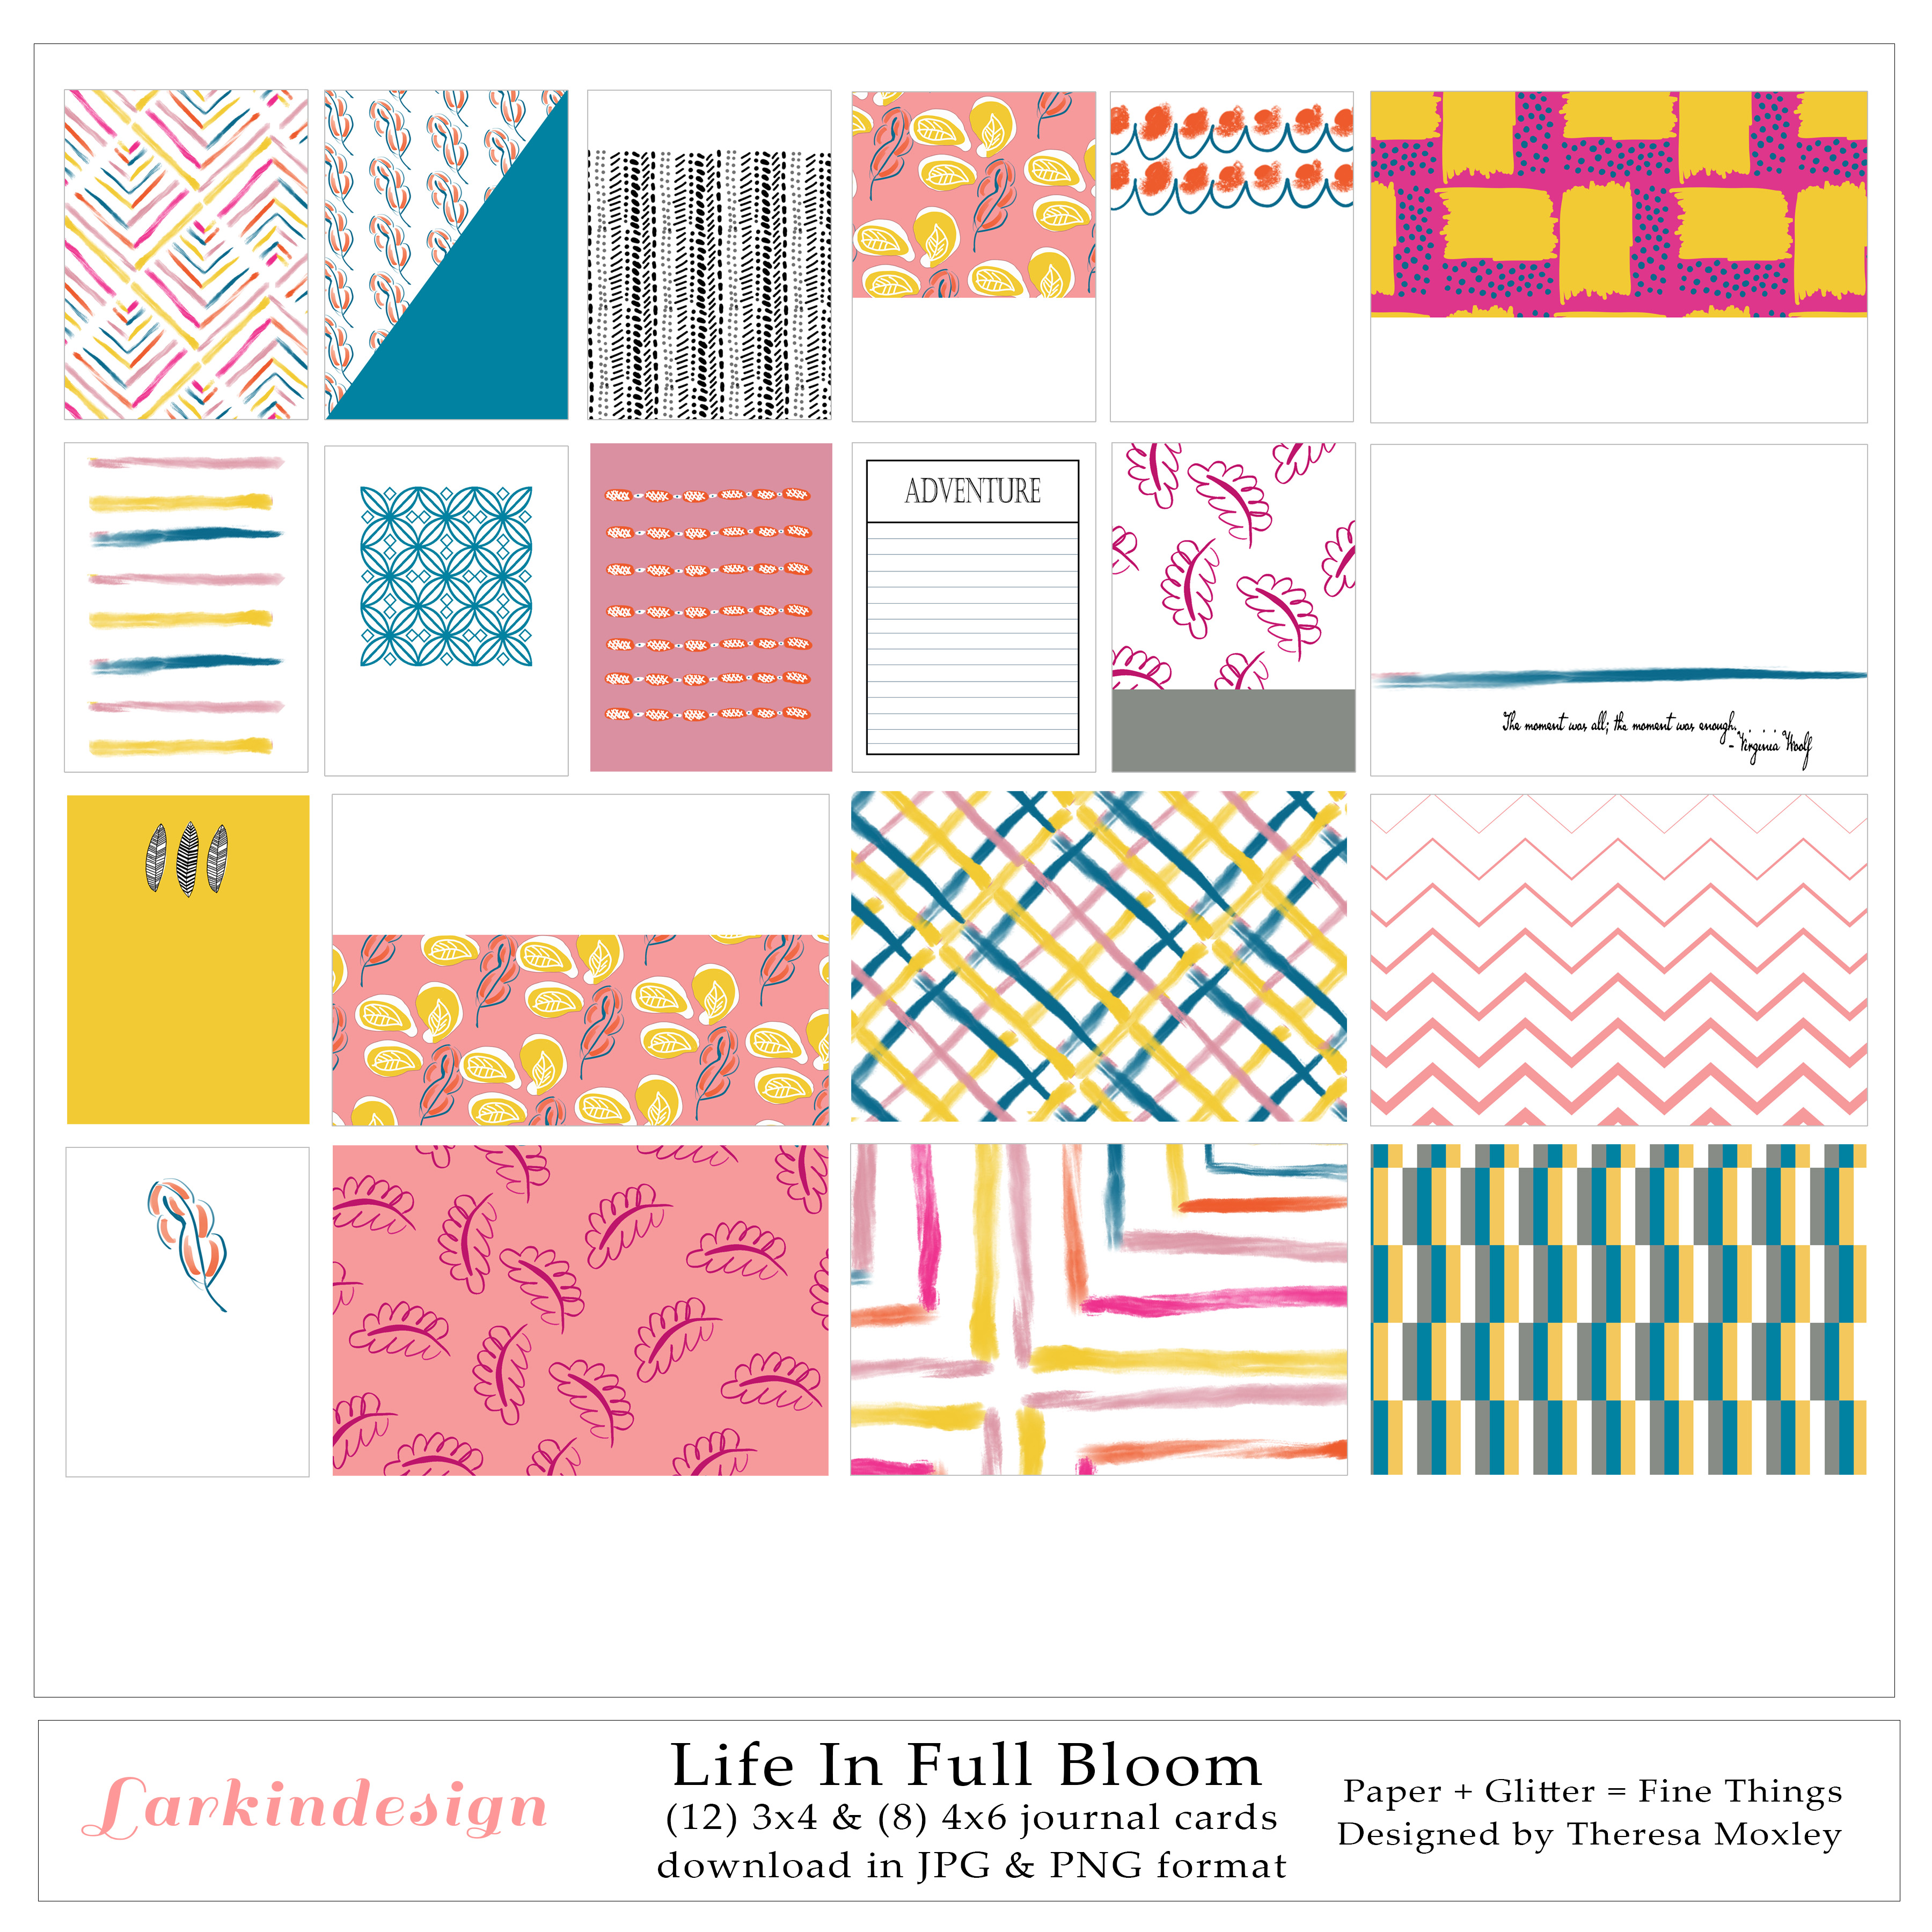 July Release | Larkindesign Digital Collection Life In Full Bloom!!!